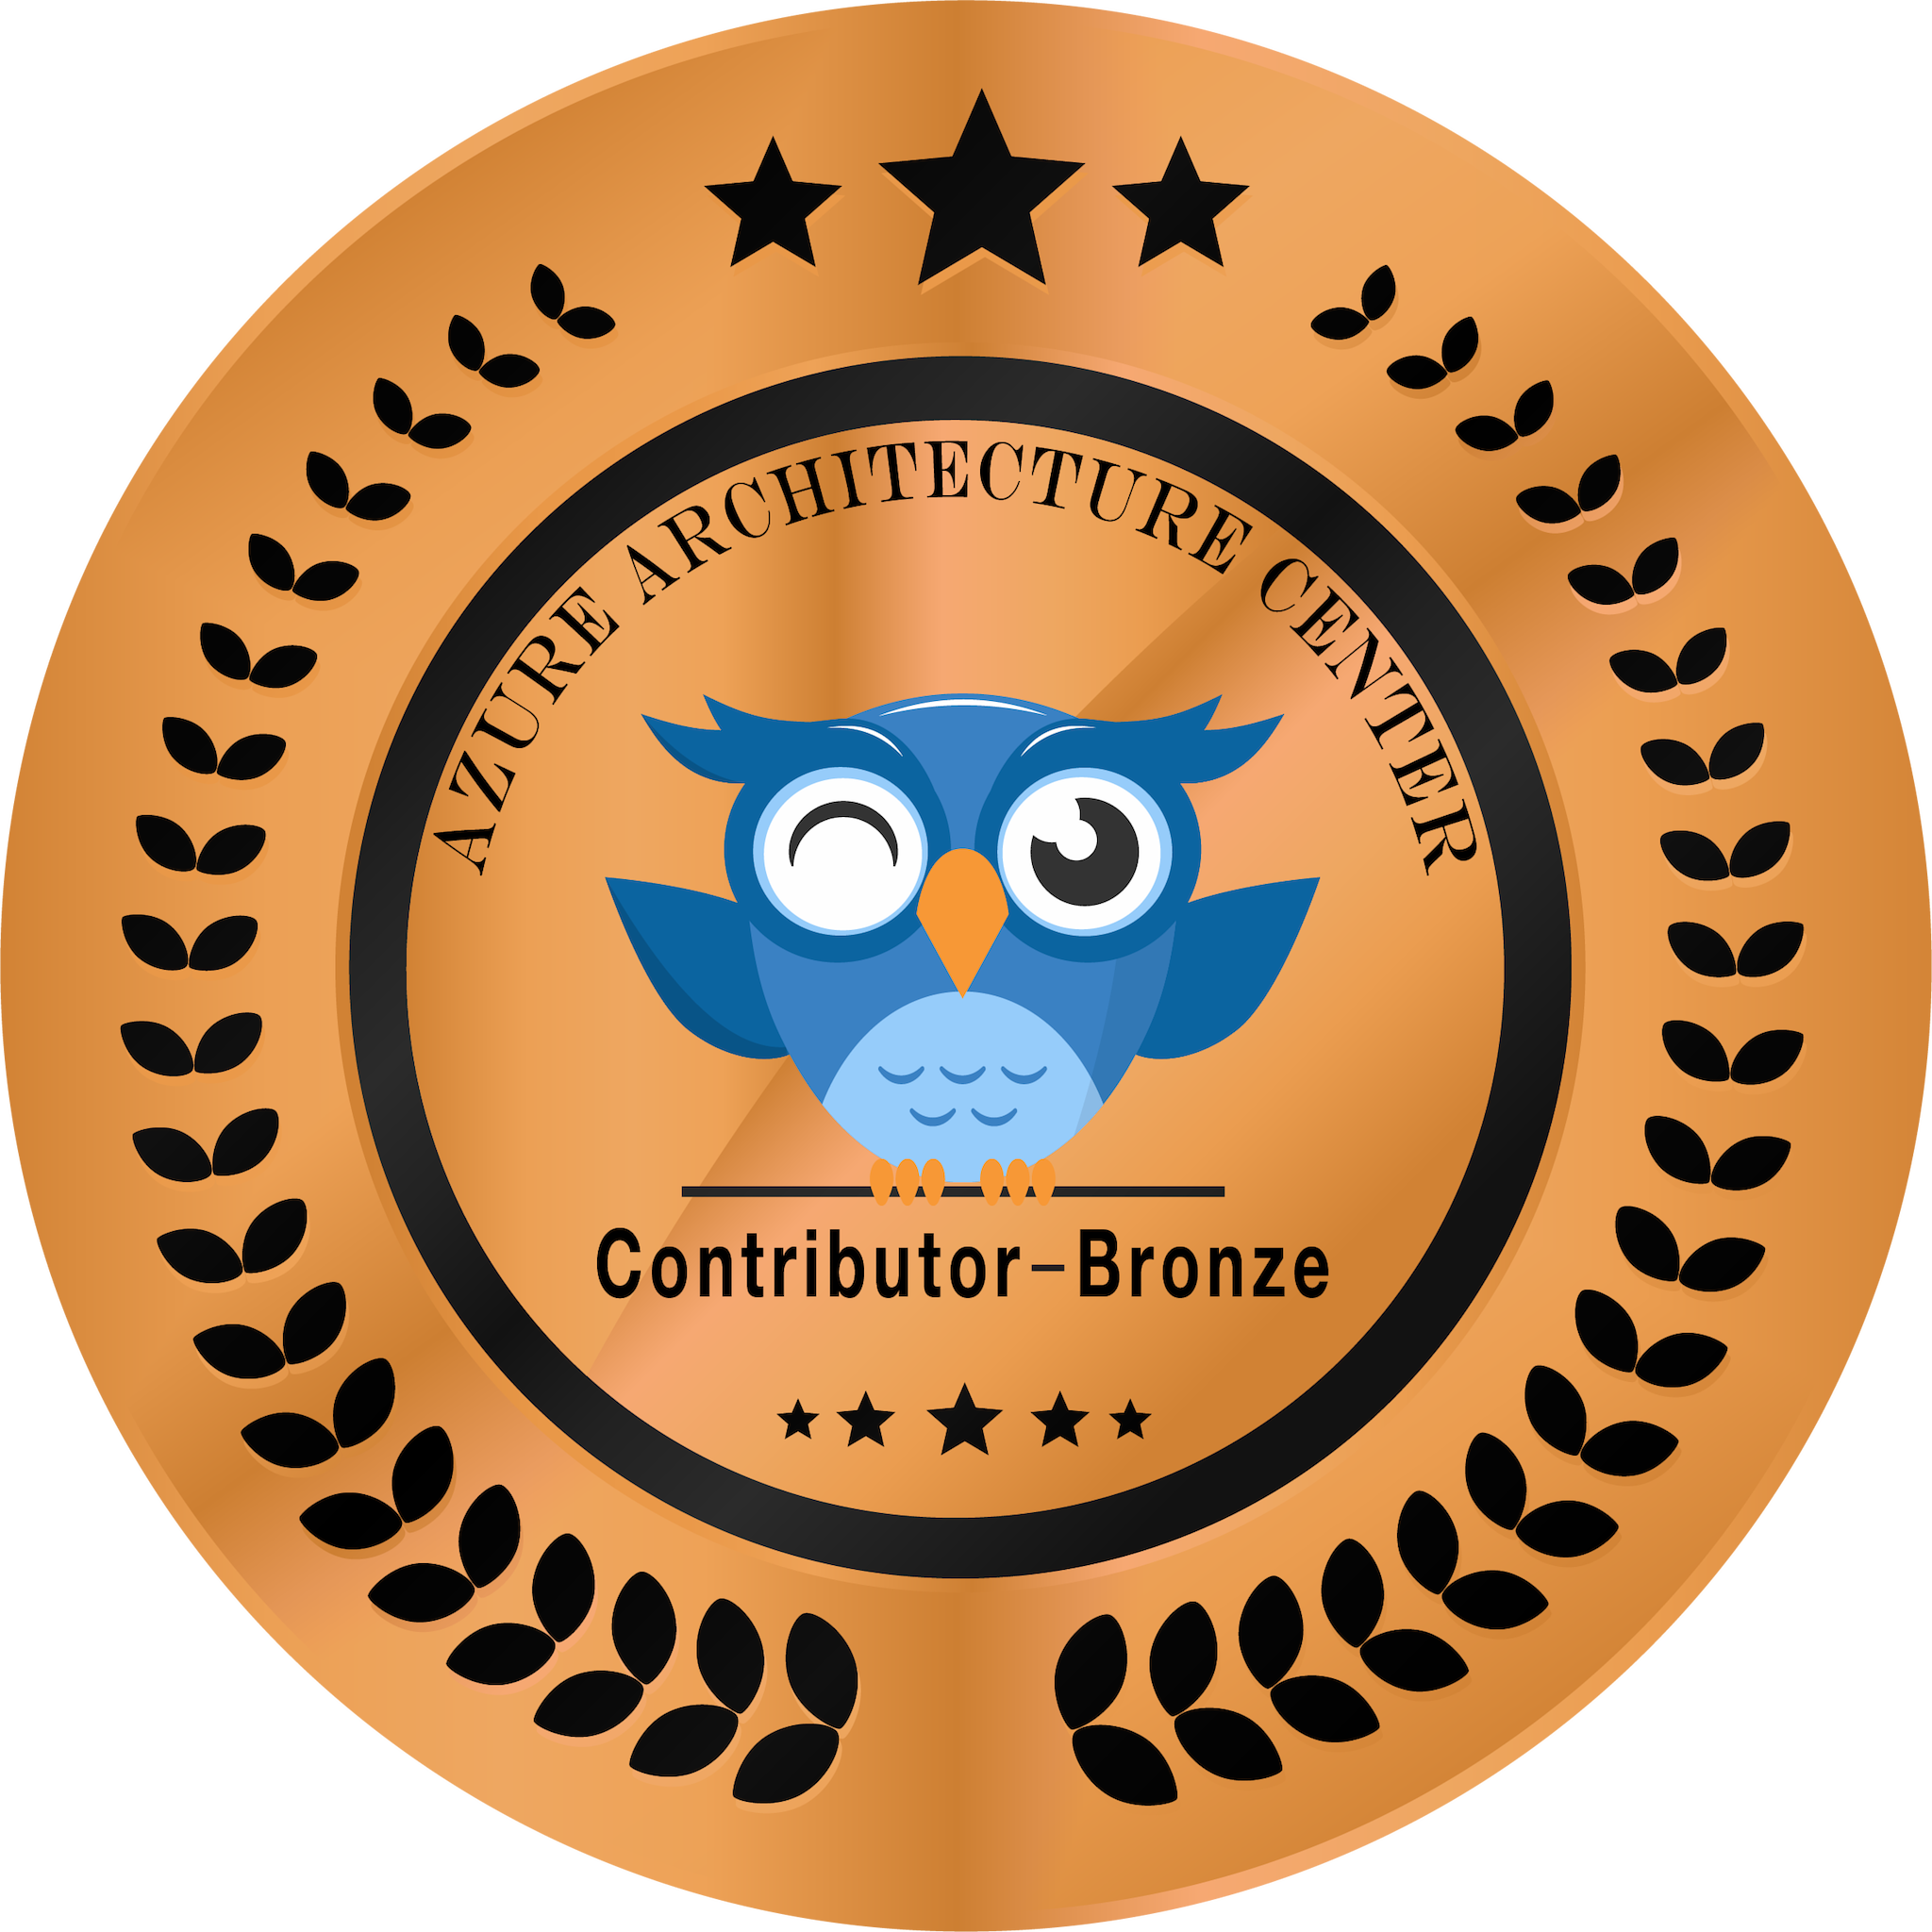 Azure Architecture Center Contributor - Bronze FY21